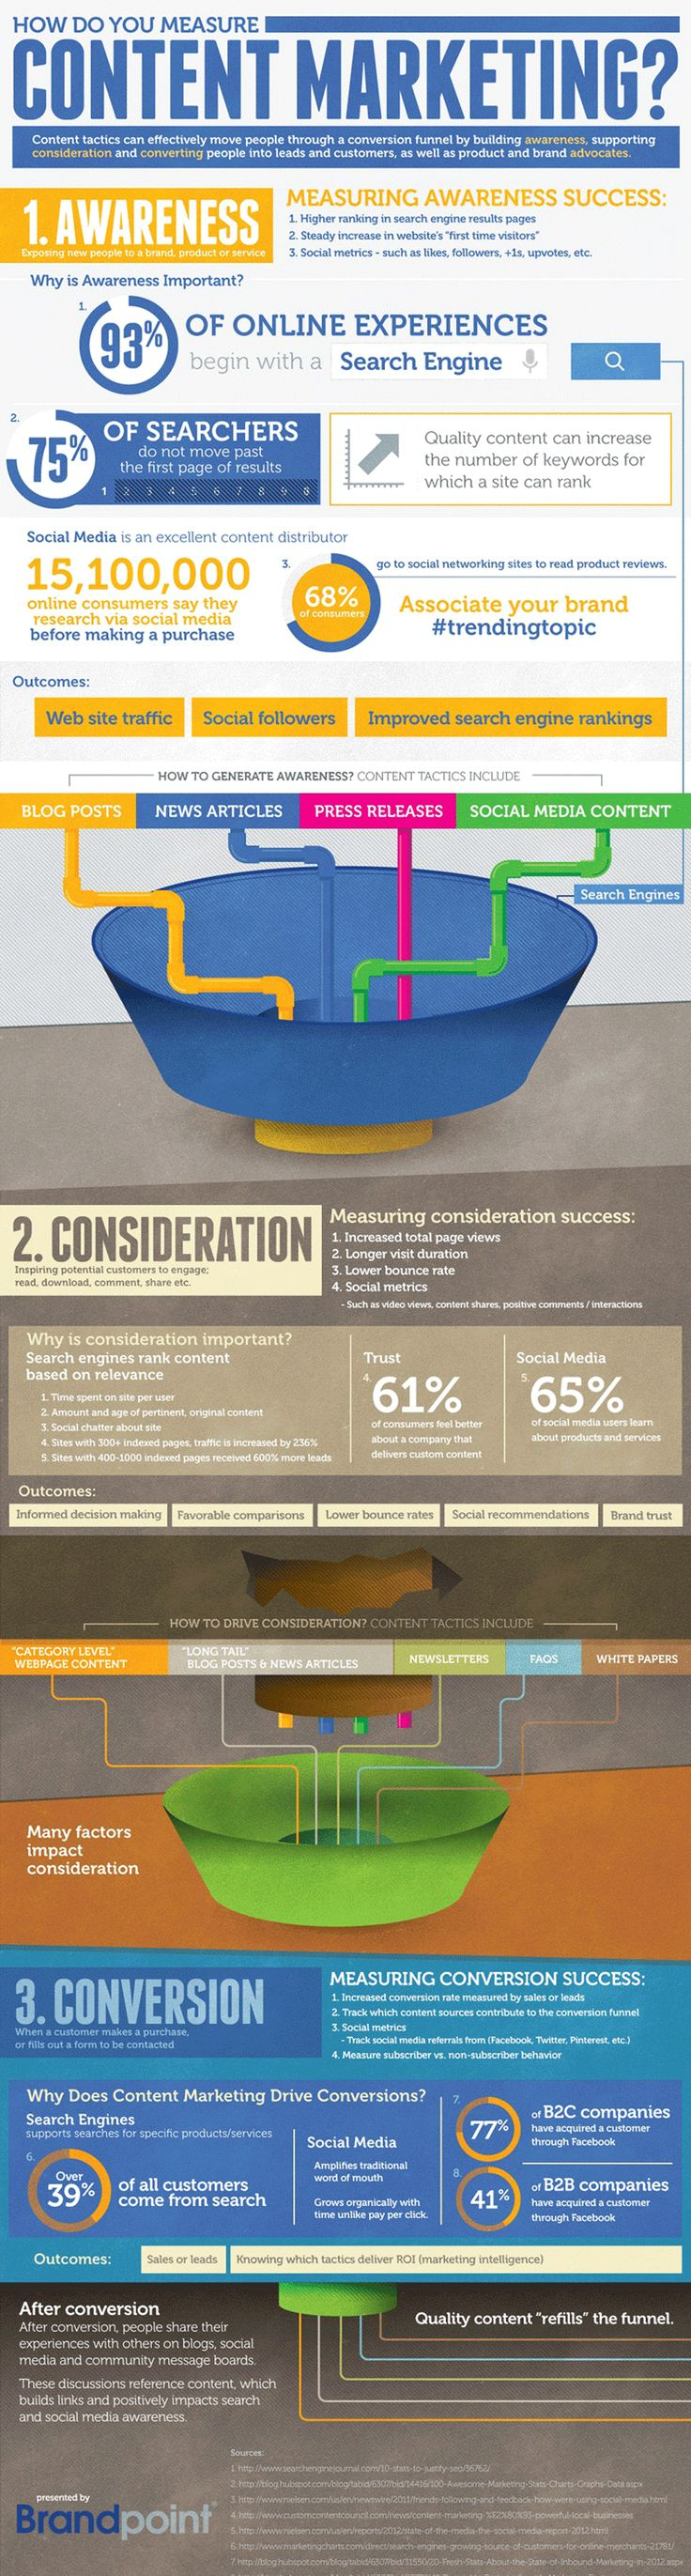 Content Infographic. Not the prettiest, but contains interesting datapoint and #contentmarketing USP's